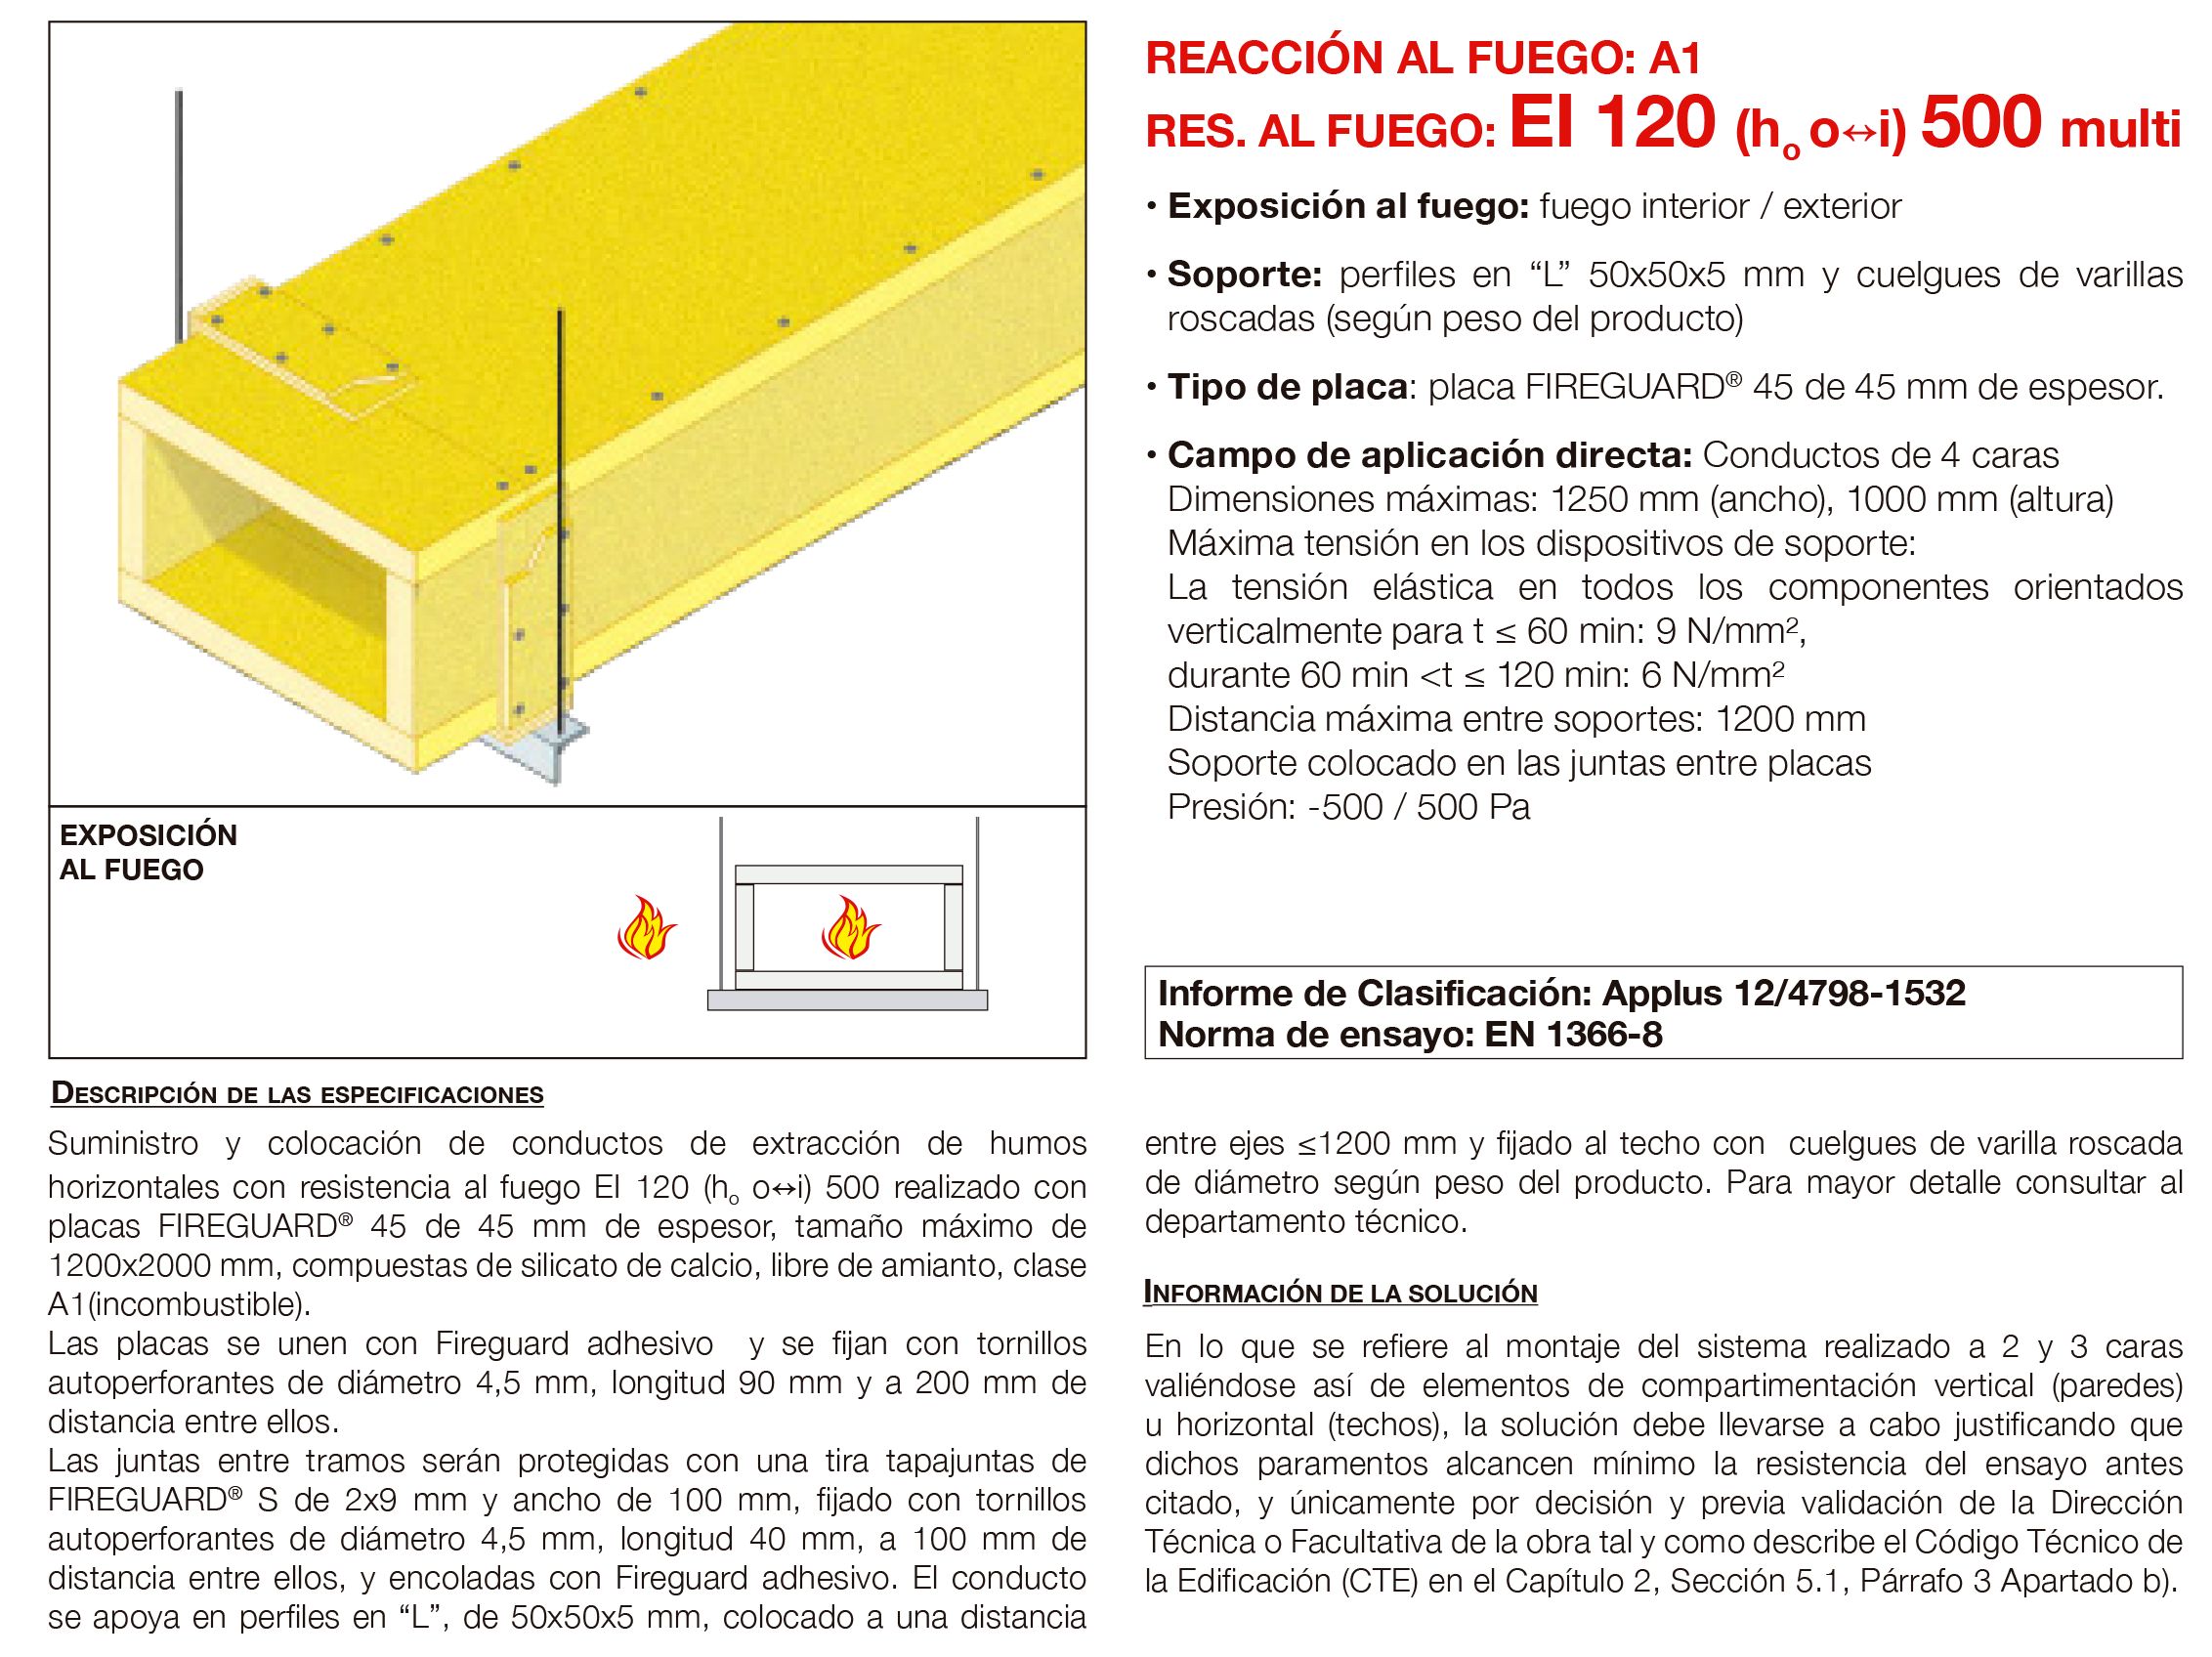 6.06 Conducto de Extraccion de Humos Horizontal con Placa EI120´